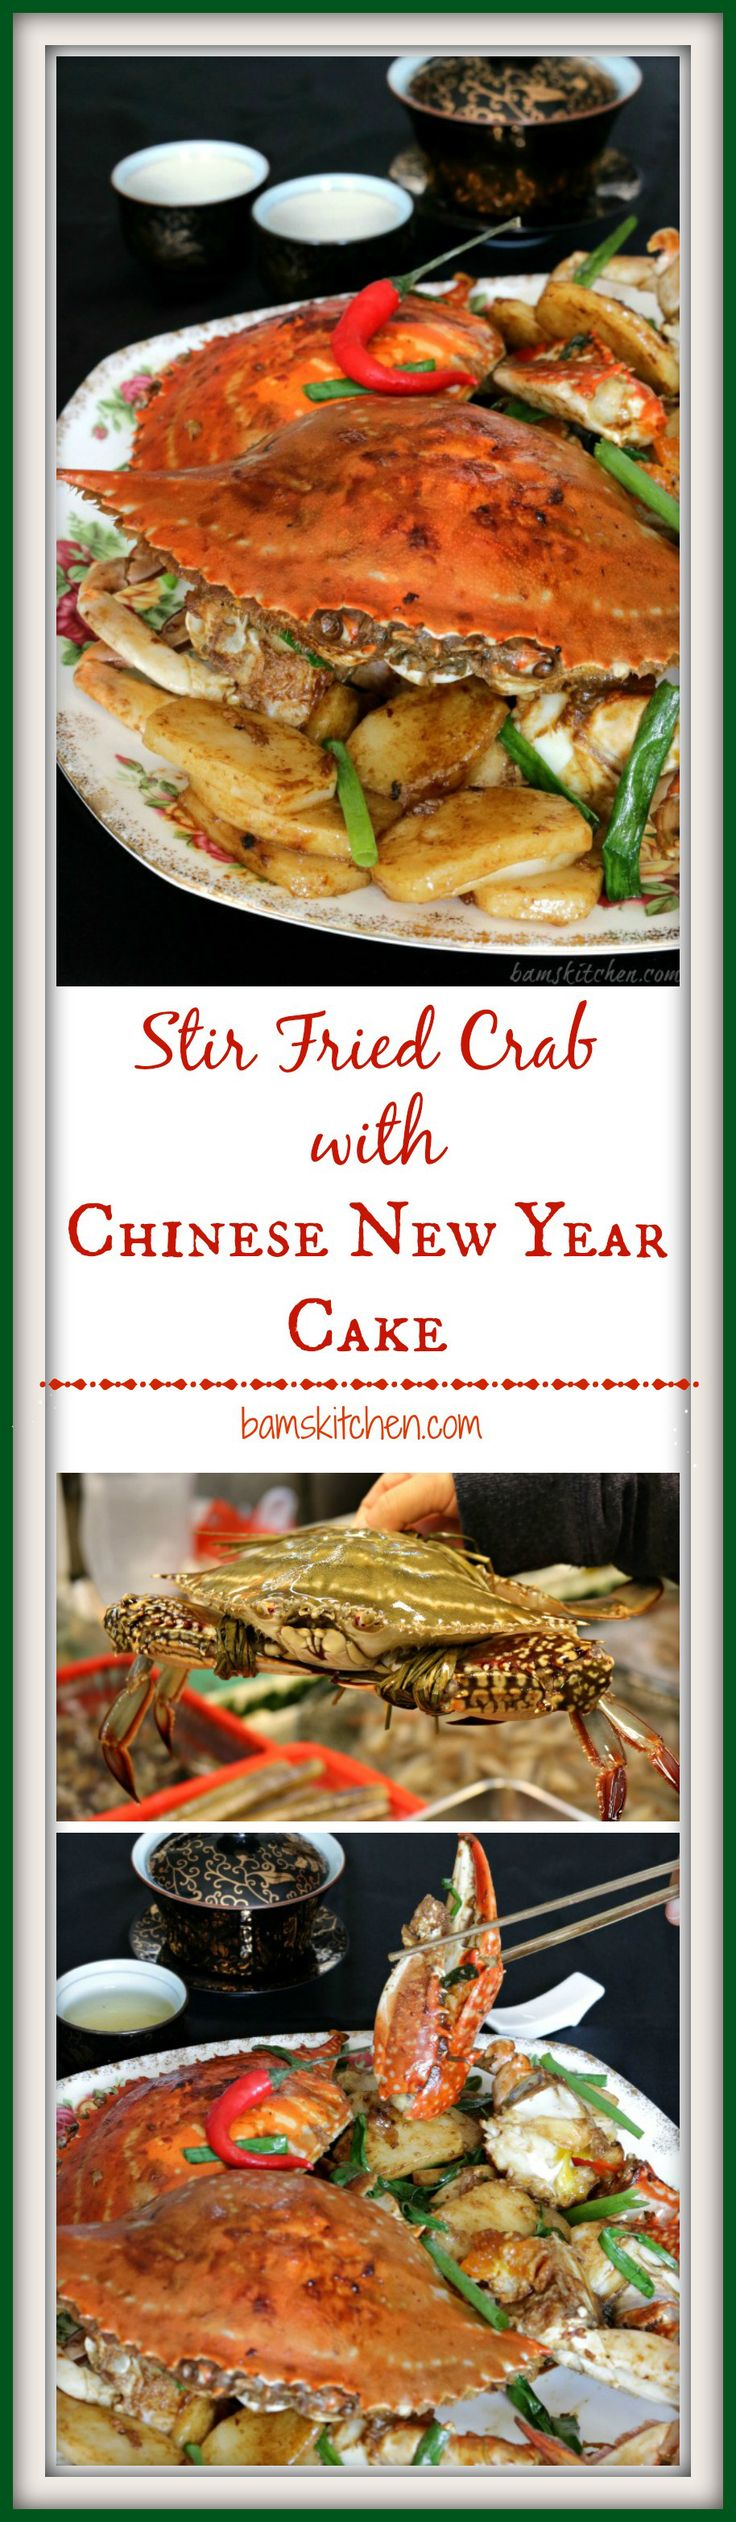 Stir Fried Crab with Chinese New Year Cake. Delicious sweet flower crab (Hua xie) and sticky rice cakes (Nian Gao) from the Zhejiang Province in China will tantalize your taste buds and wow your guests this Lunar New Year- Bam's Kitchen